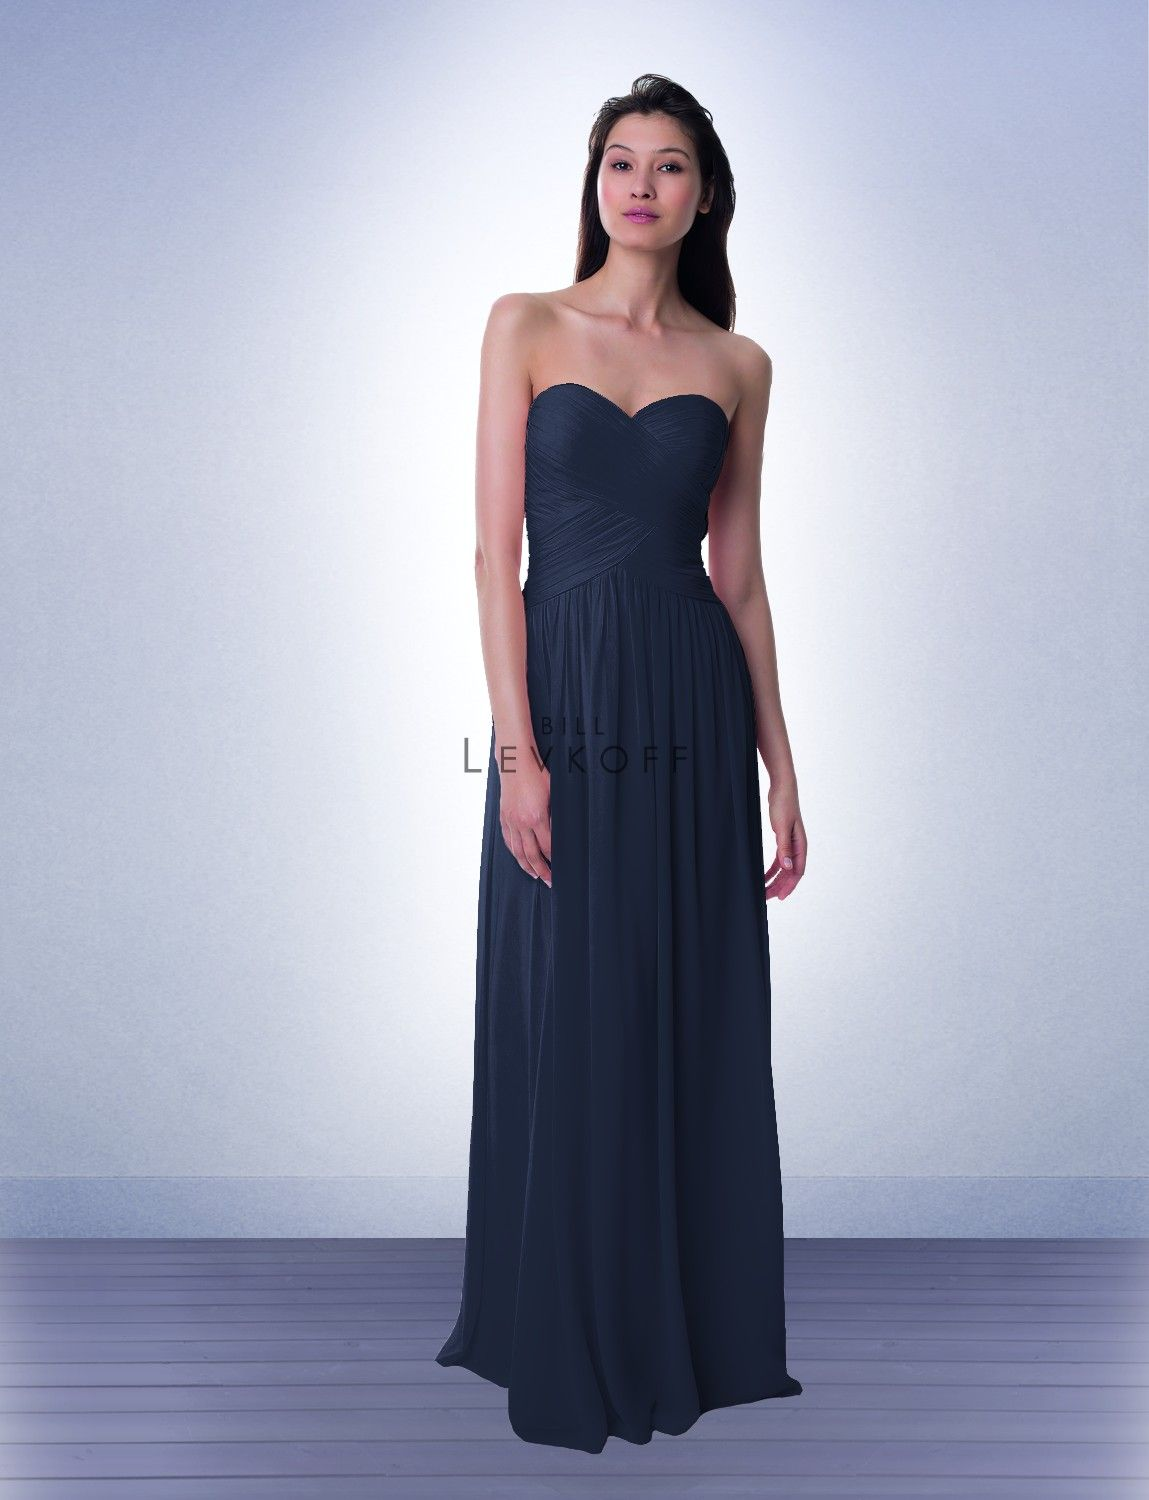 Navy bridesmaid dress style 982 bridesmaid dresses by bill navy bridesmaid dress style 982 bridesmaid dresses by bill levkoff ombrellifo Image collections